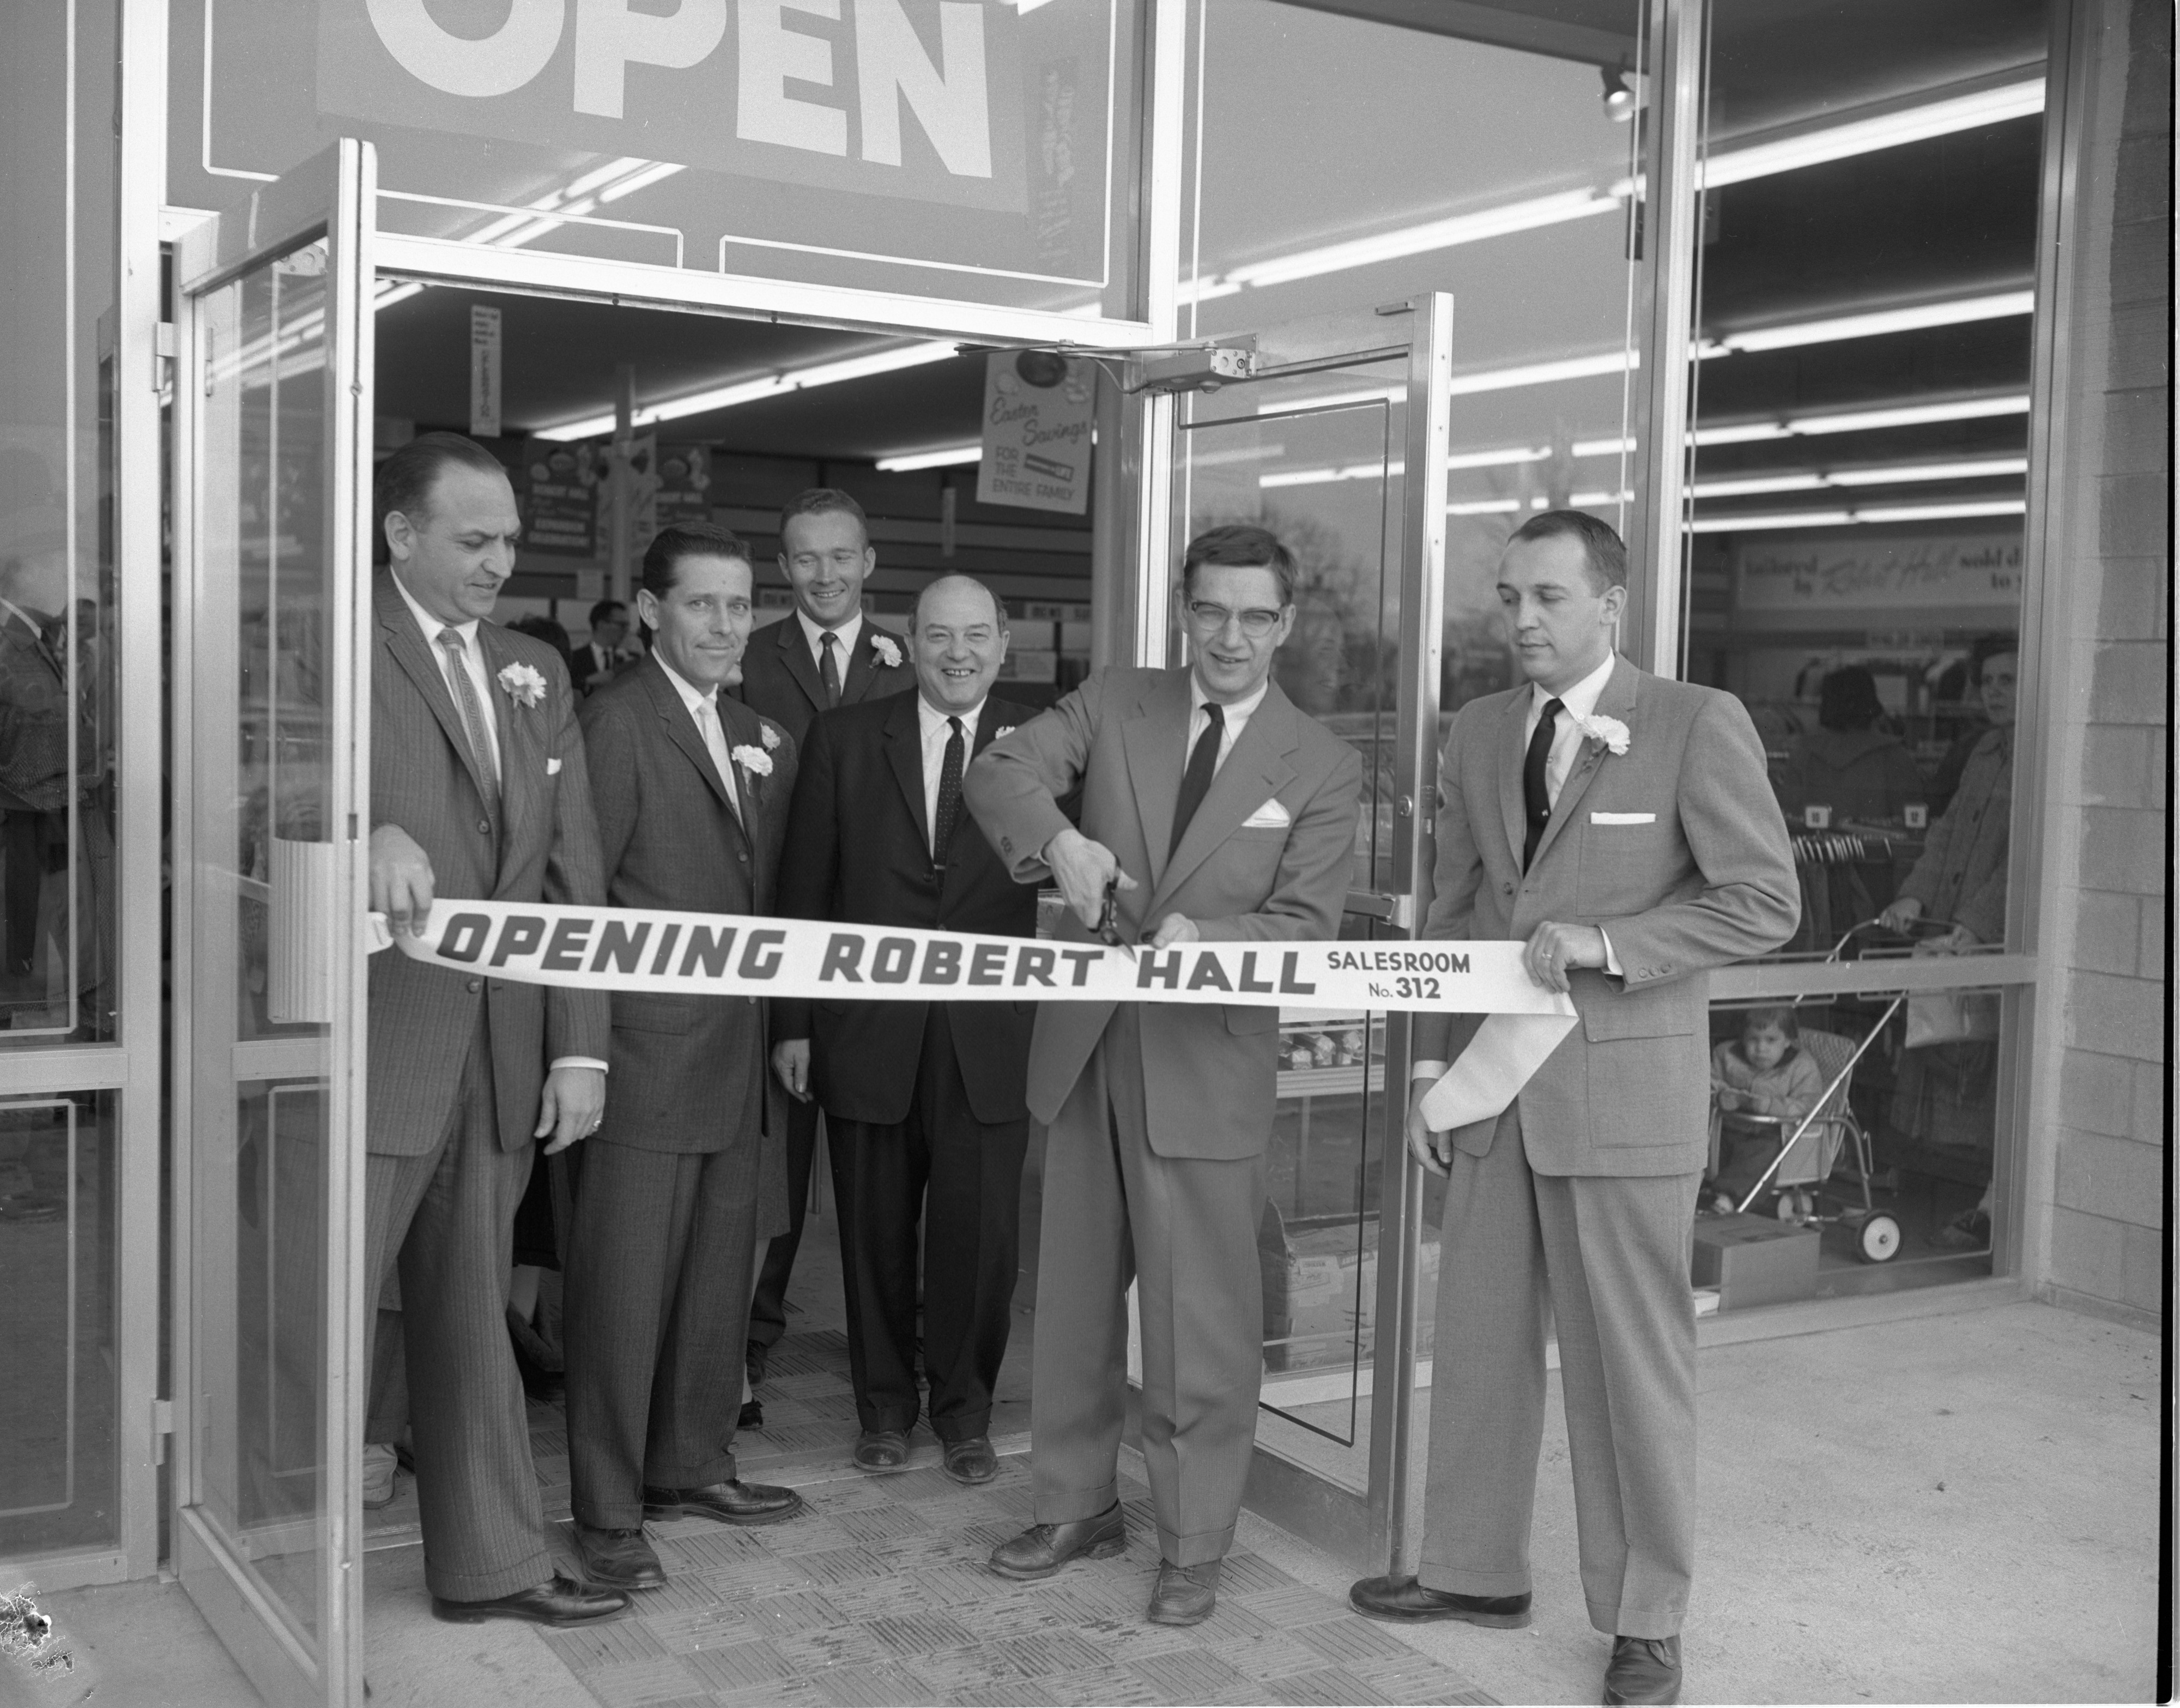 Mayor Eldersveld Cuts The Tape To Formally Open The New Robert Hall Clothes Store, February 1959 image